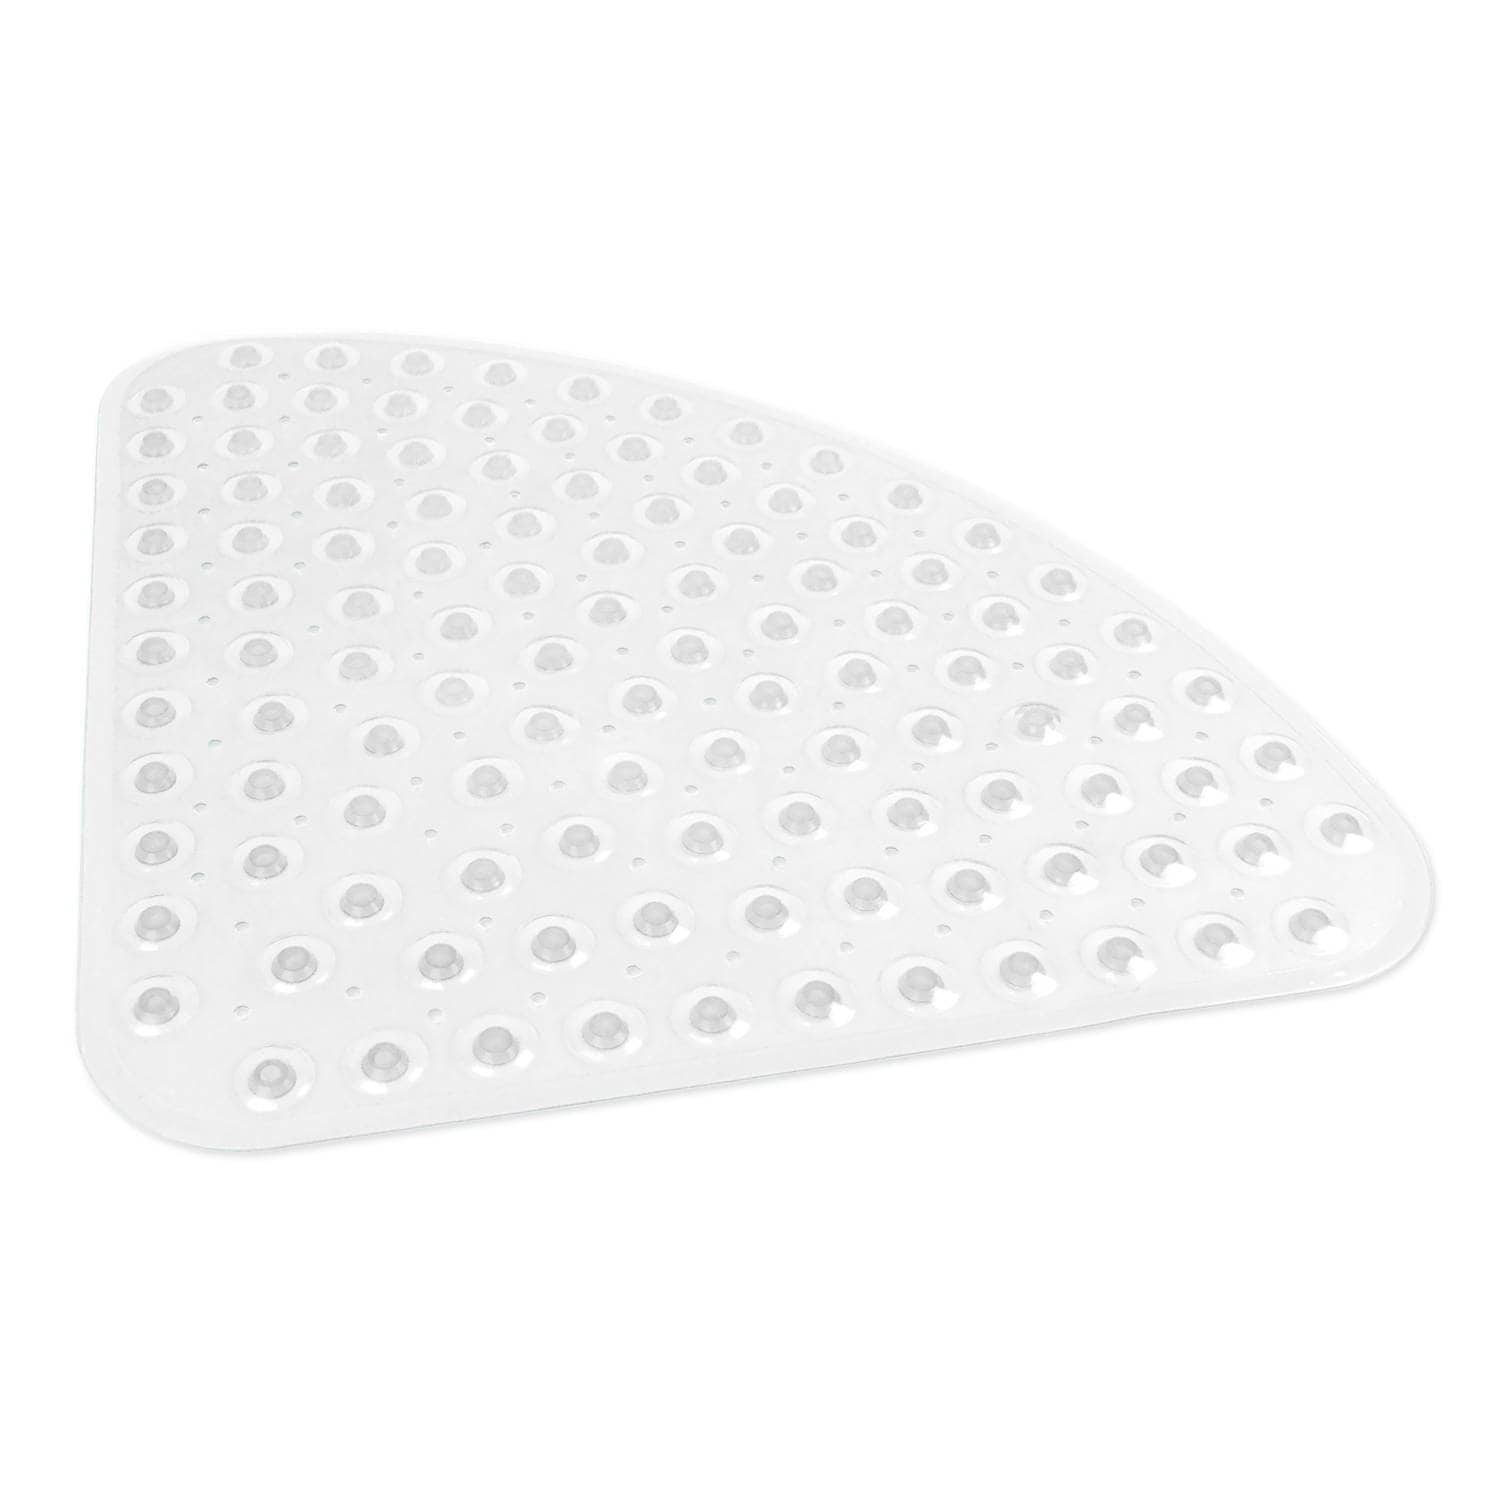 Round Vinyl Bath Mat (Clear), White (PVC, Solid Color)